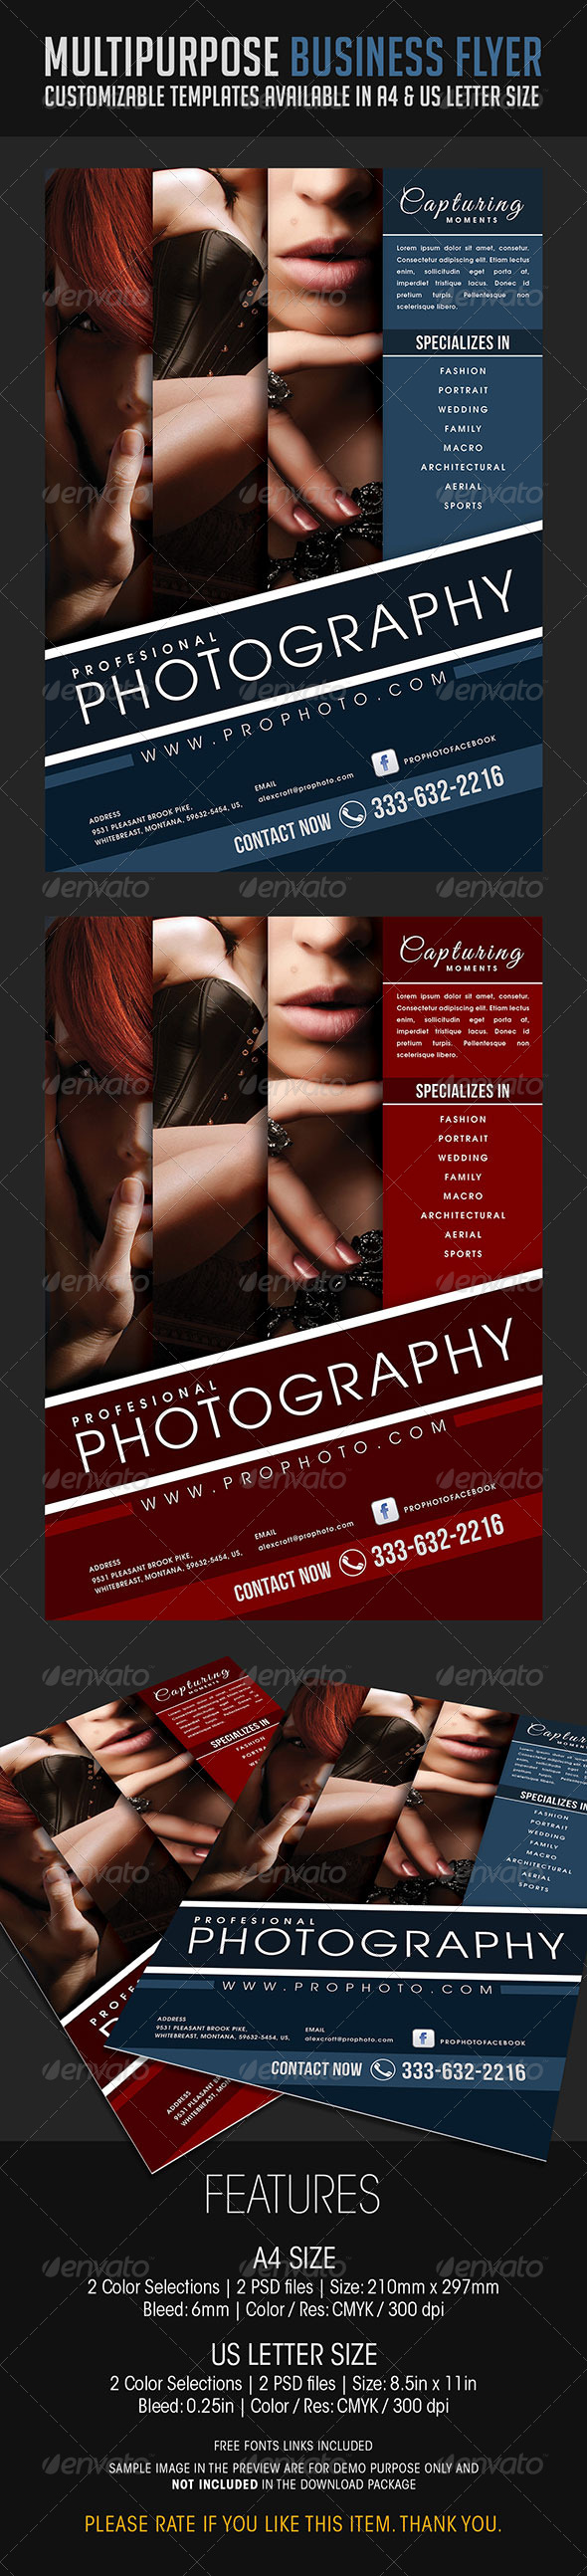 GraphicRiver Multipurpose Business Flyer 08 6821093